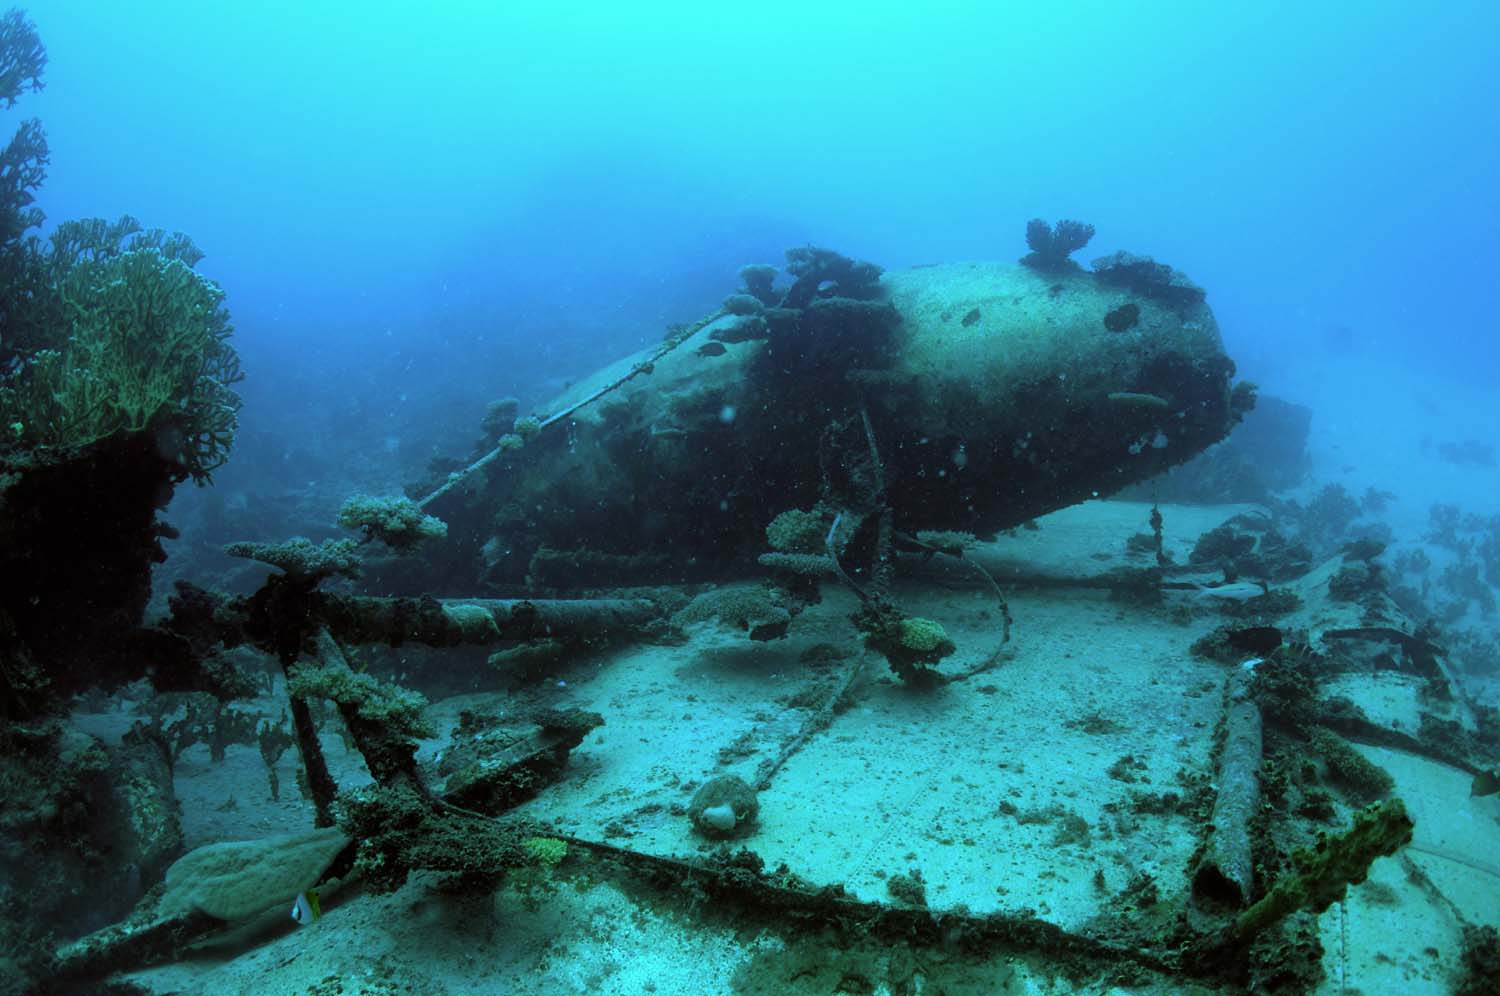 Divers can hover around the wreck and explore the debris field